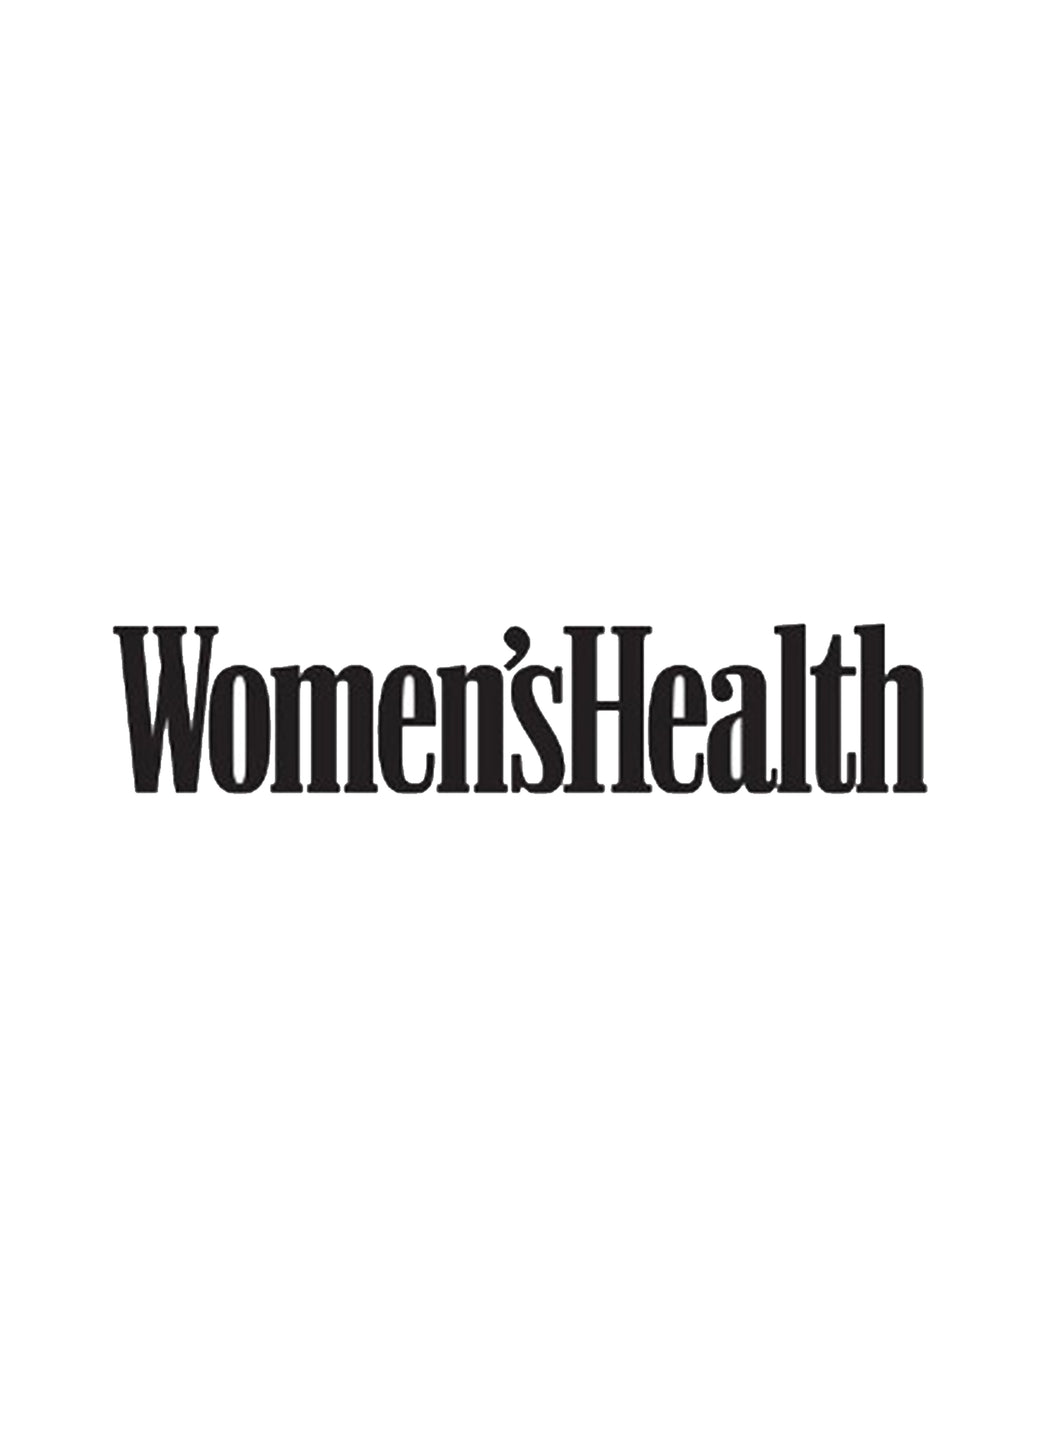 Women's Health - Kayla Itsines